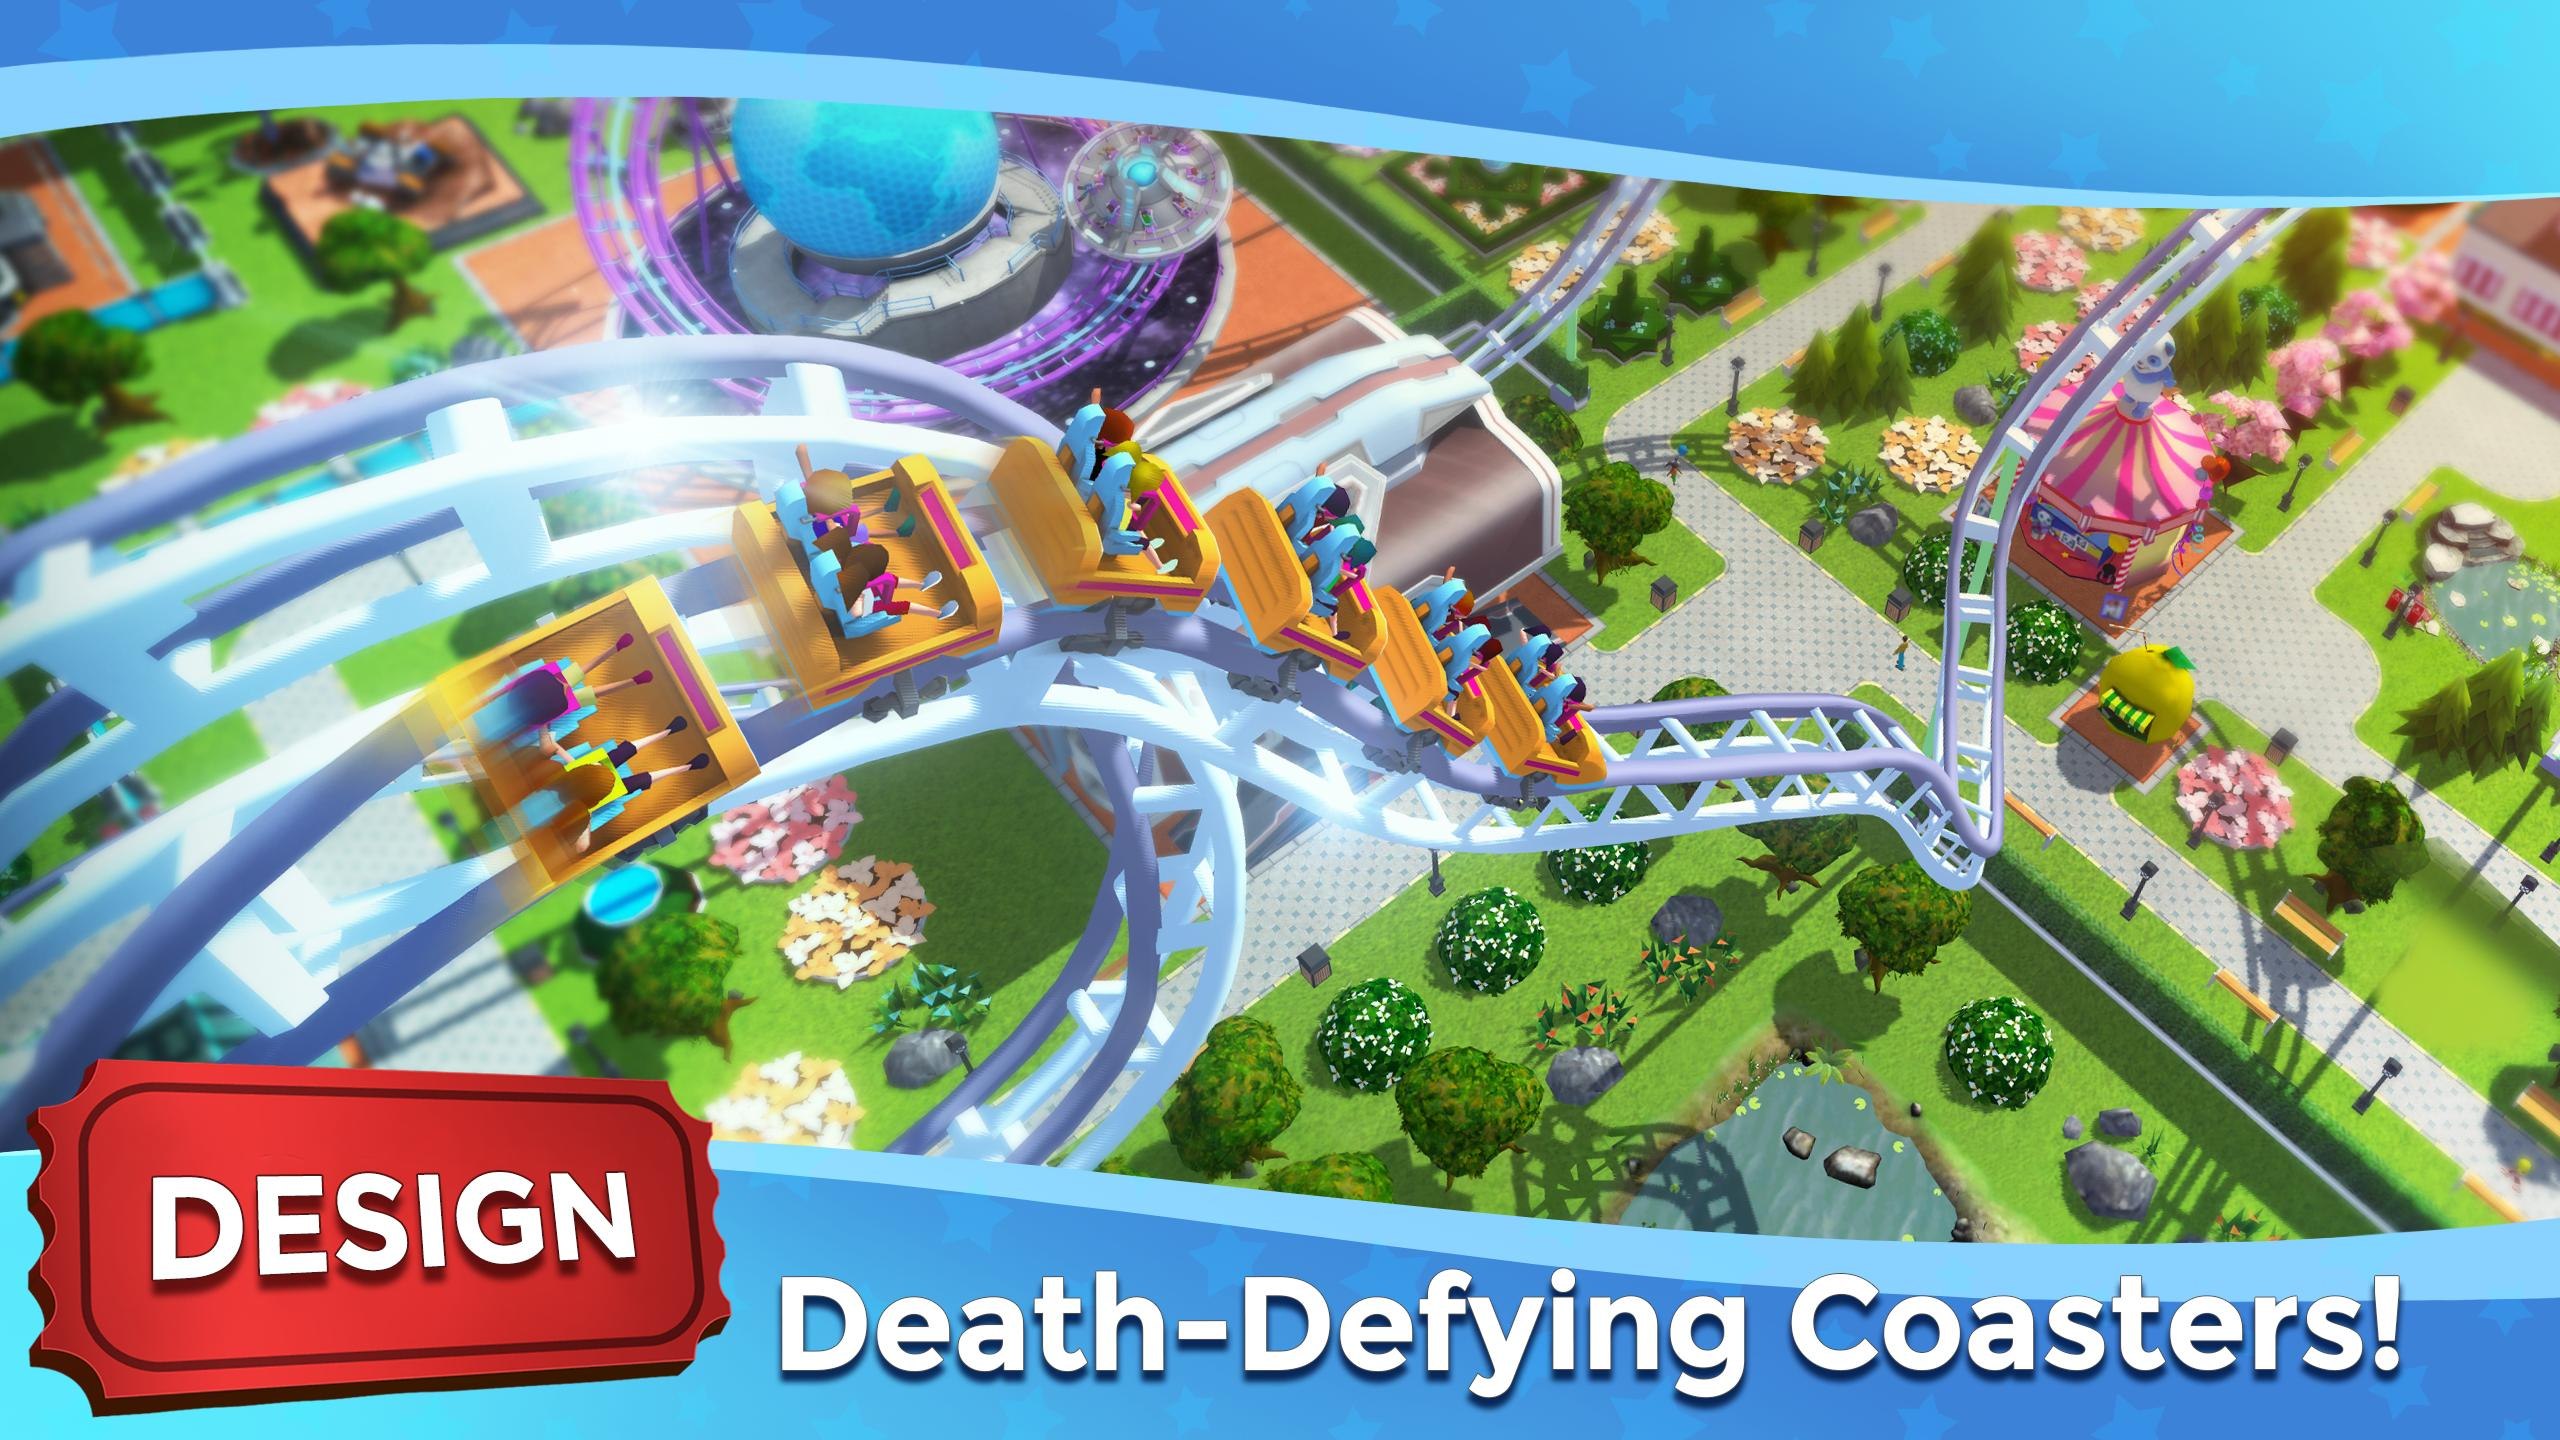 RollerCoaster Tycoon Touch - Build your Theme Park 3.5.0 Screenshot 18